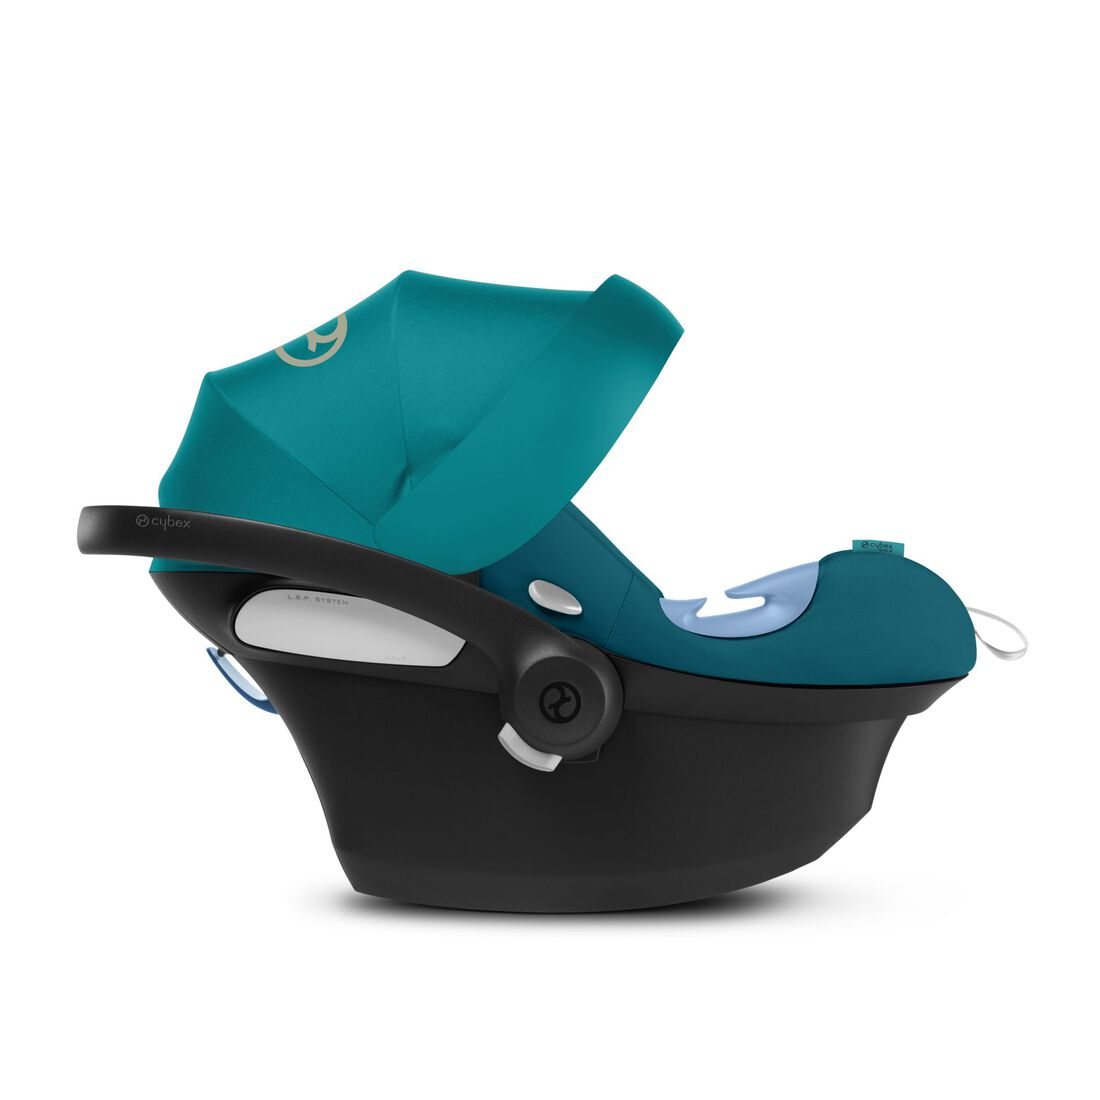 CYBEX Aton M - River Blue in River Blue large image number 5